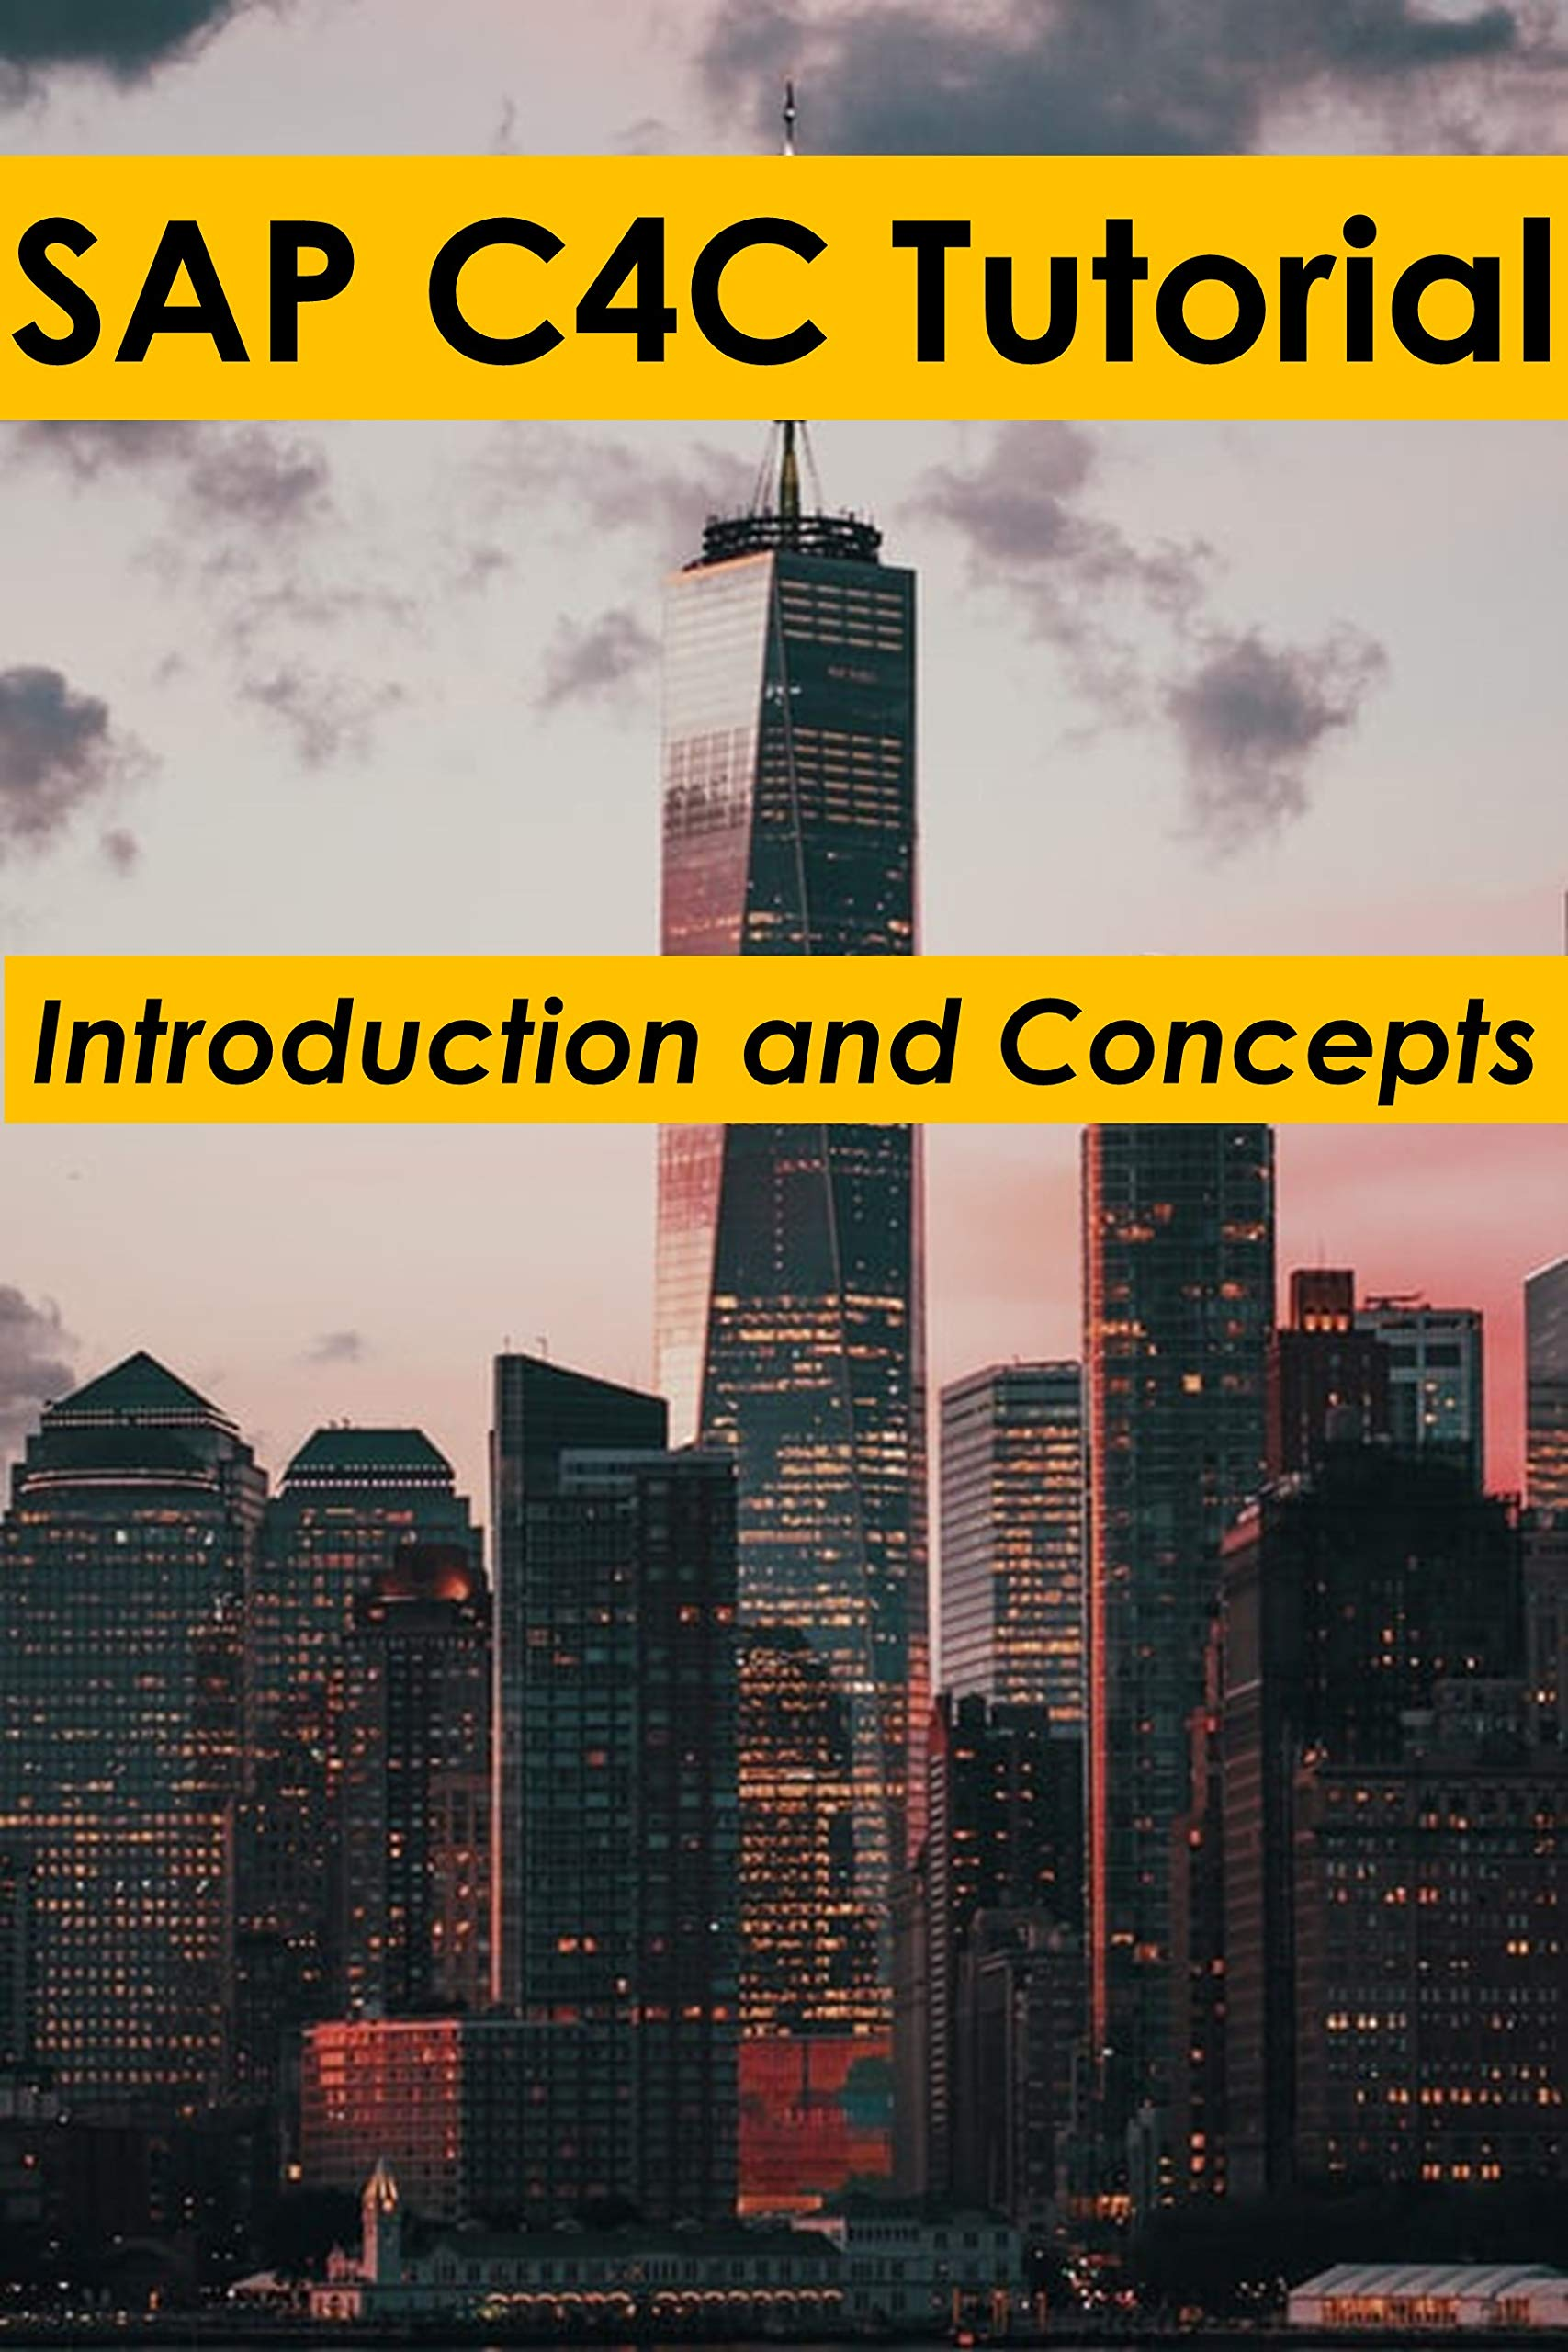 SAP C4C Tutorial: Introduction and Concepts